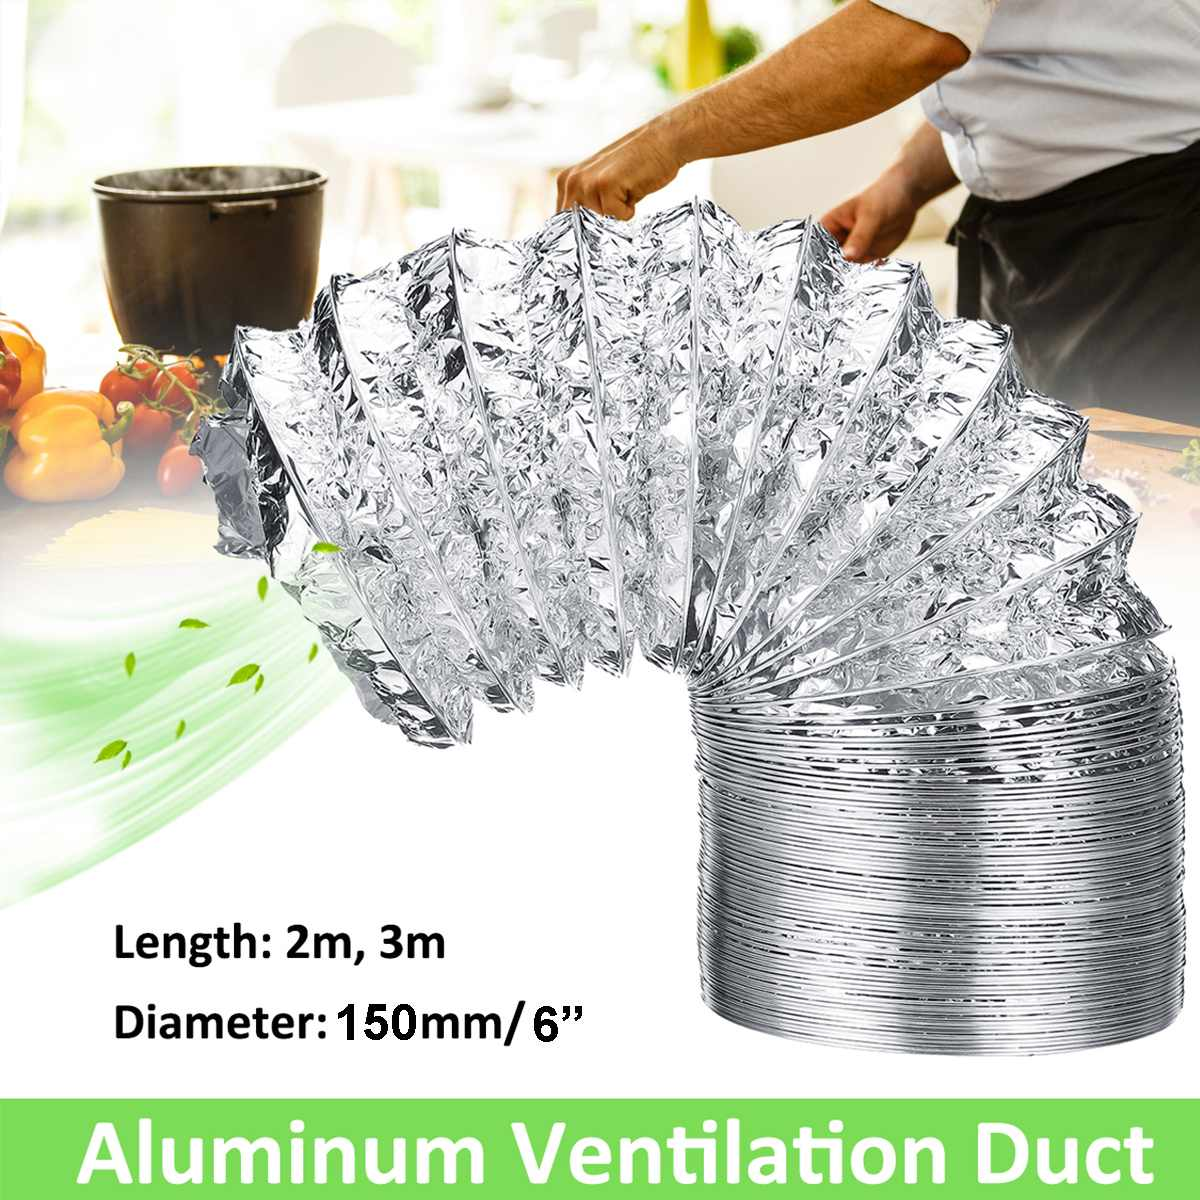 Double-layer Aluminum Foil Fan Duct Conduit Exhaust Hose Ventilation Air Tube For Kitchen Bathroom Duct Exhaust Fan 2/3 Meter